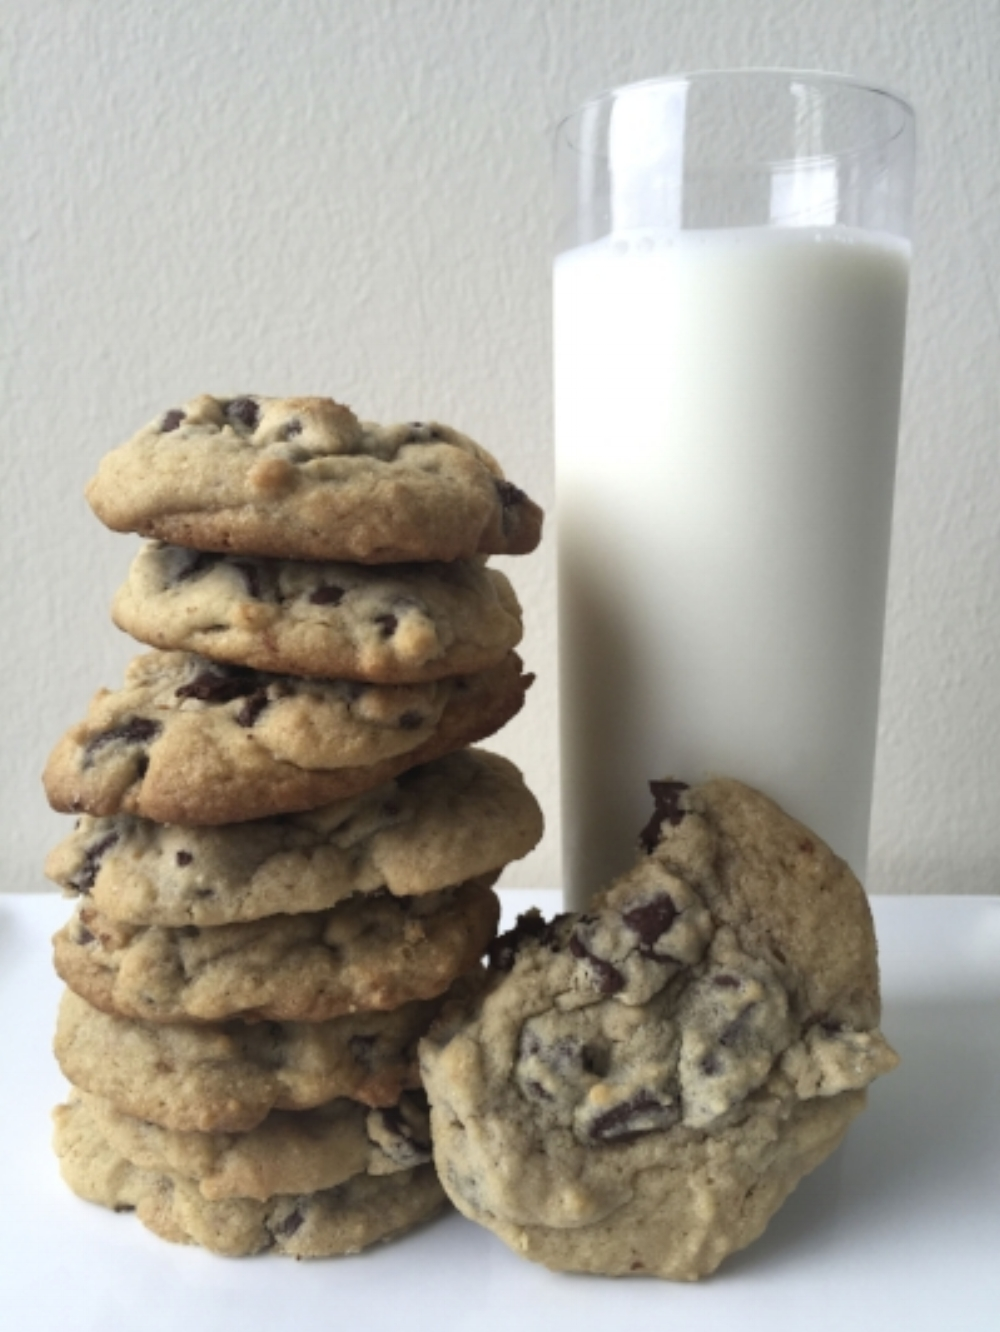 SENSATIONAL CHOCOLATE CHIP COOKIES